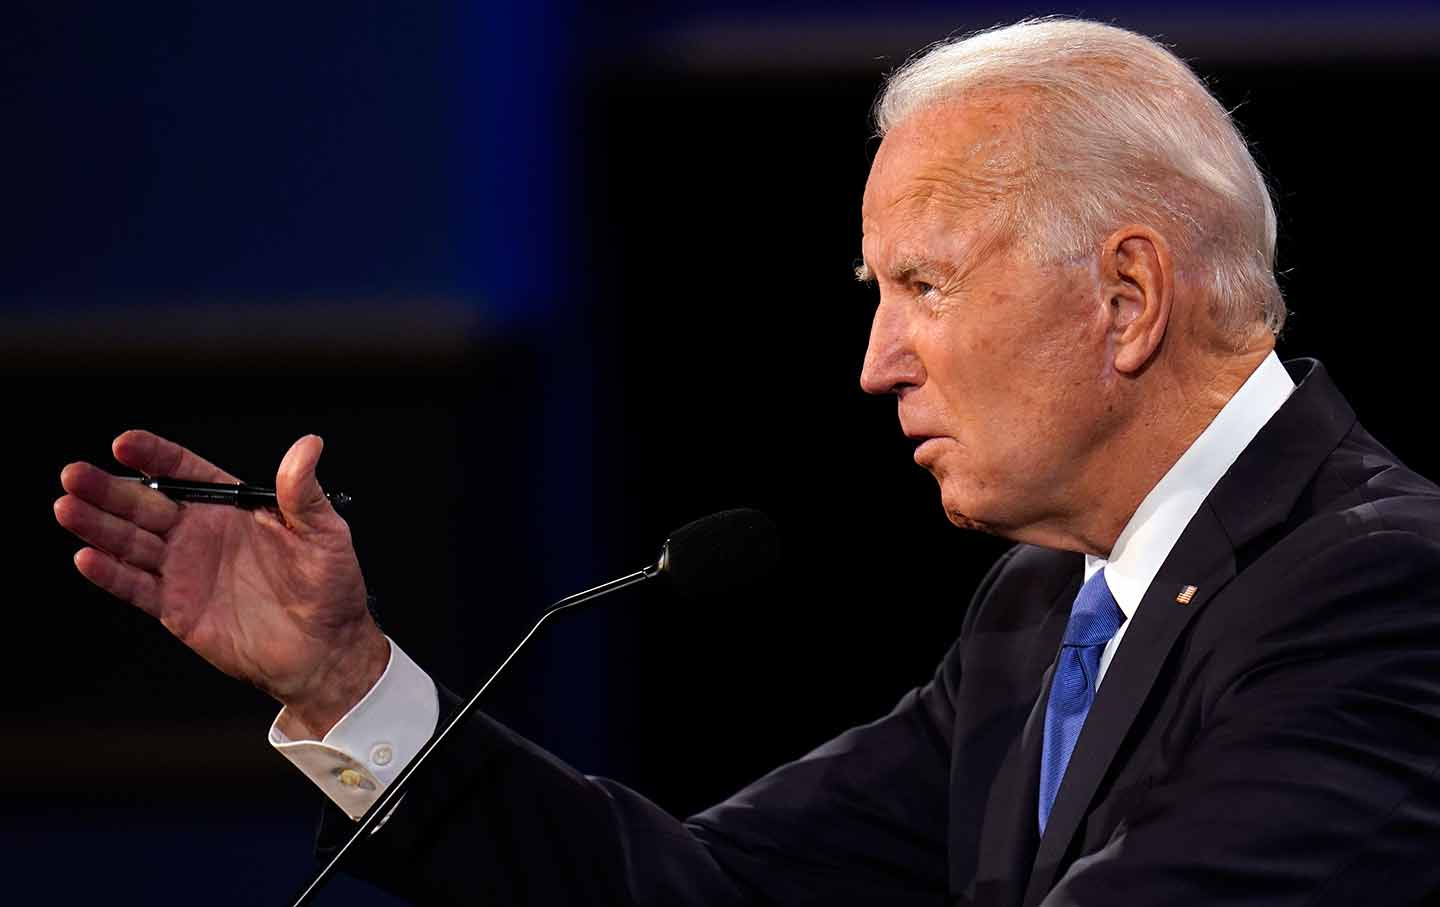 The Moment Joe Biden Found His Voice—And Won the Final Debate